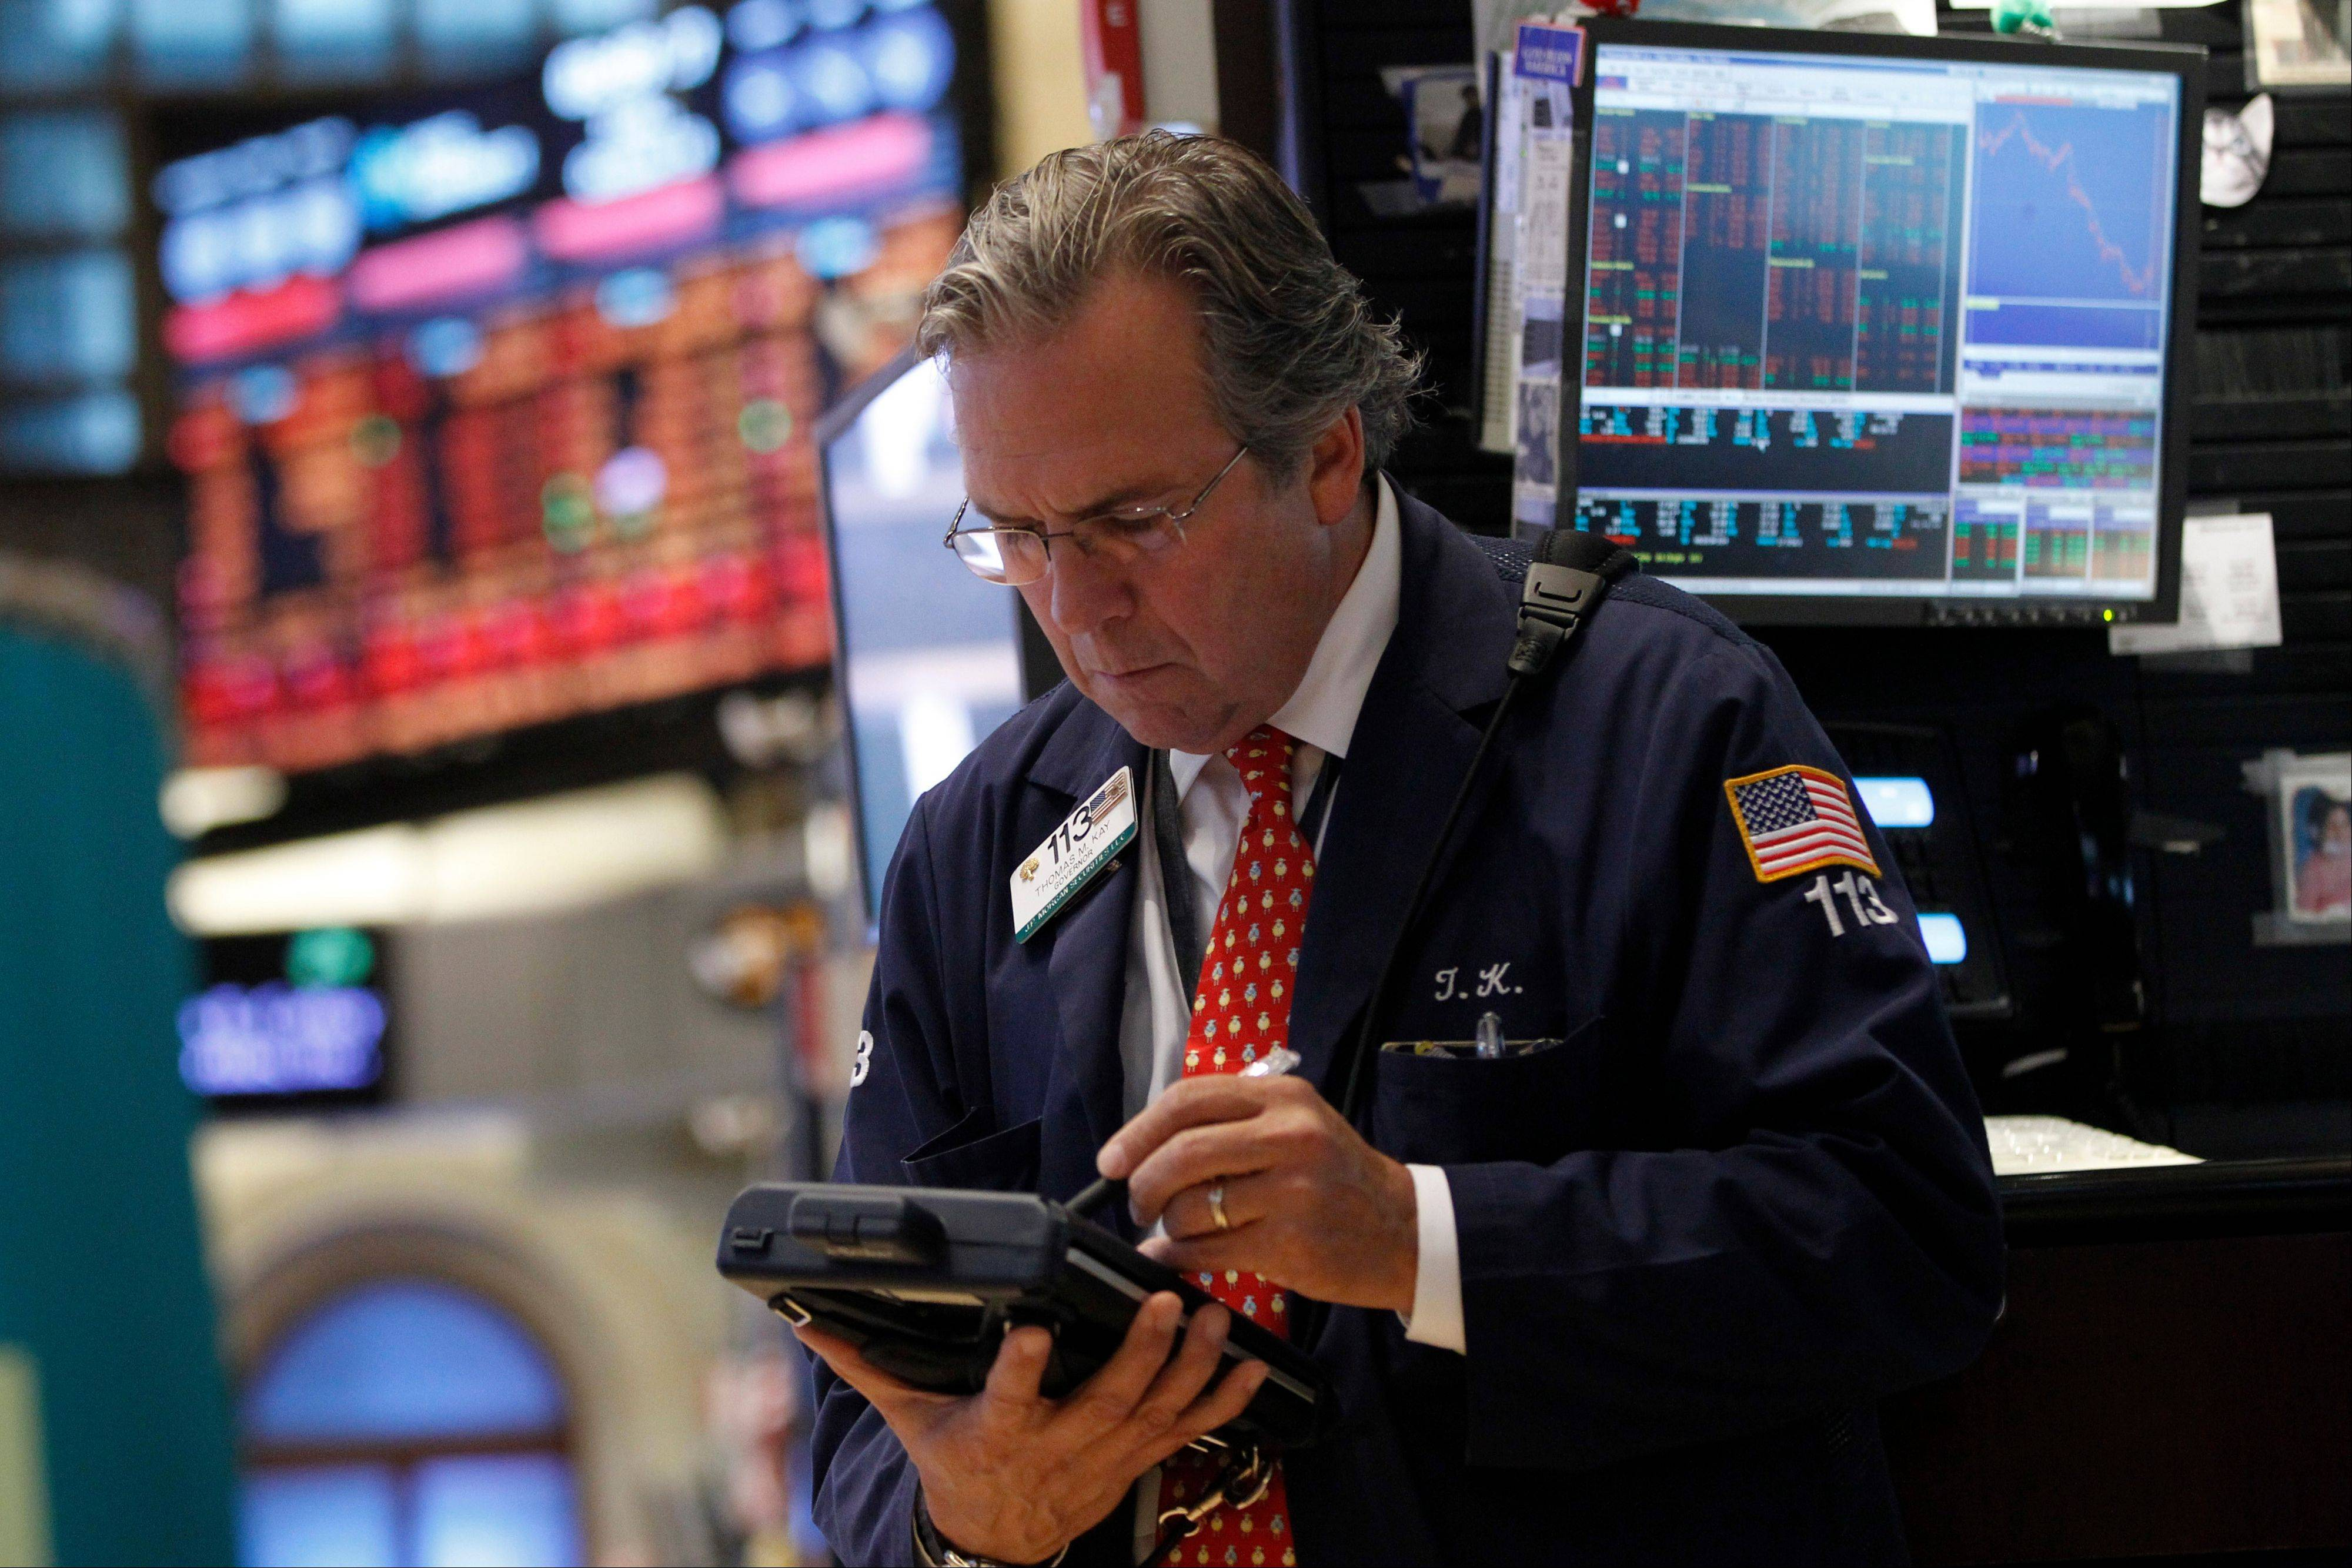 On Friday, the Dow Jones industrial average fell more than 200 points for its worst day in four months.